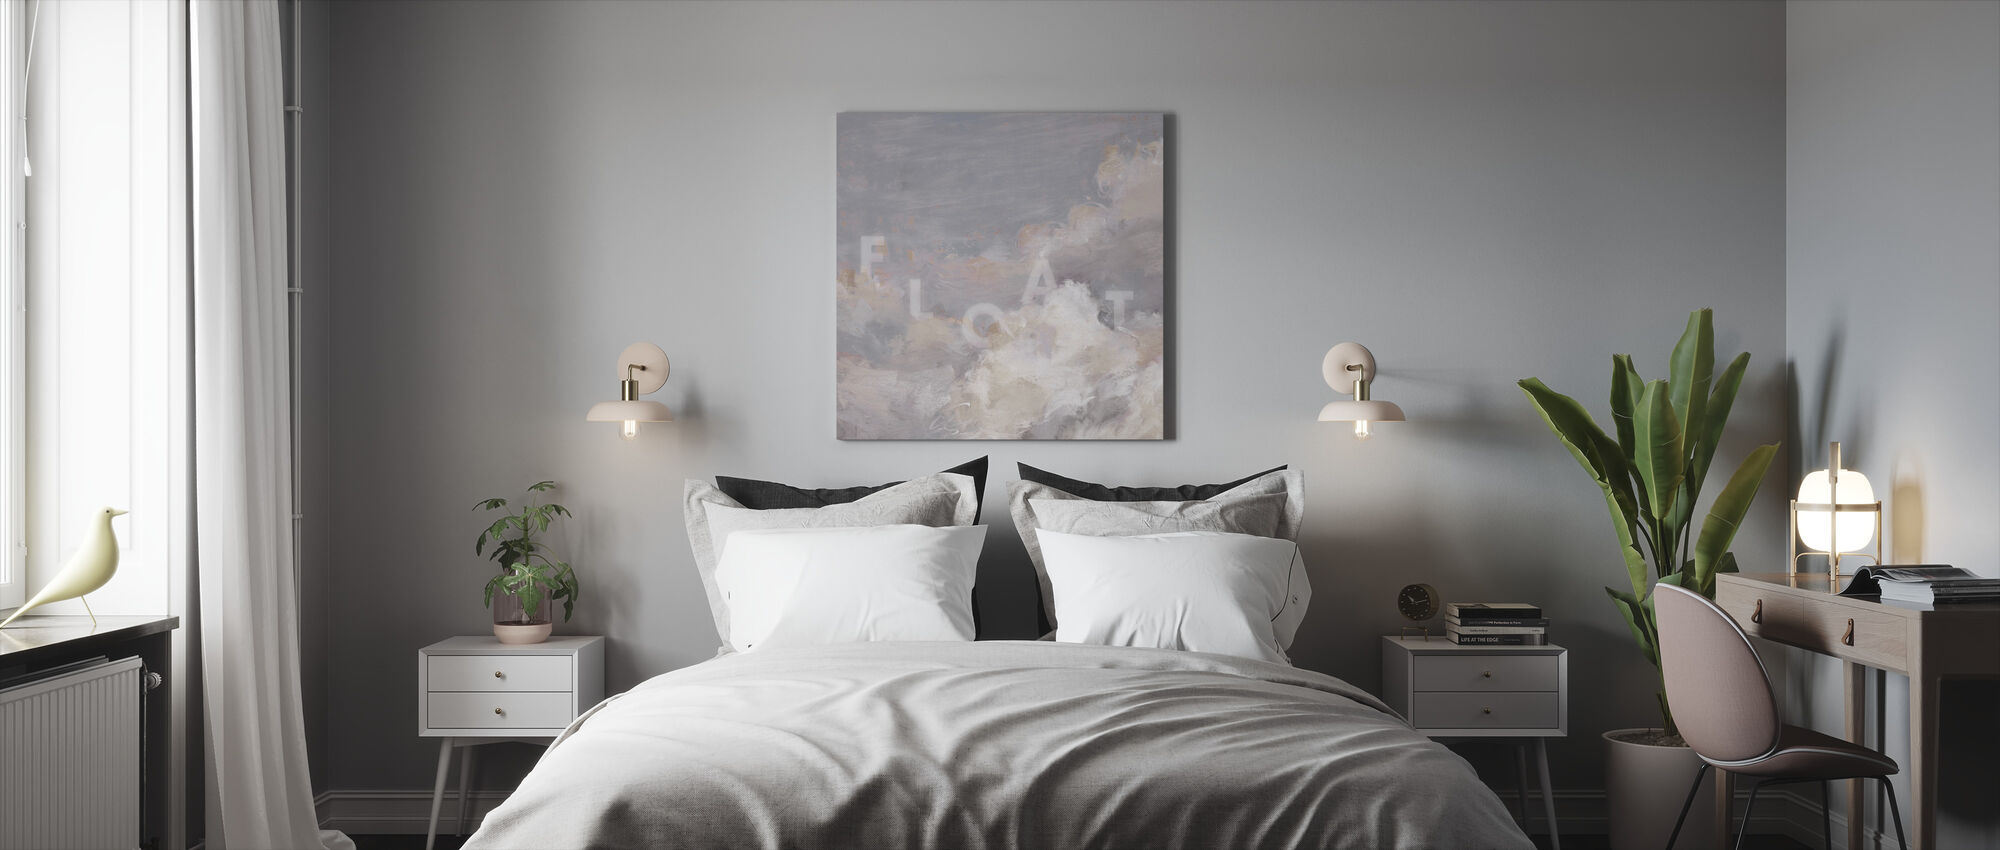 Daydream Neutral 05 - Canvas print - Bedroom